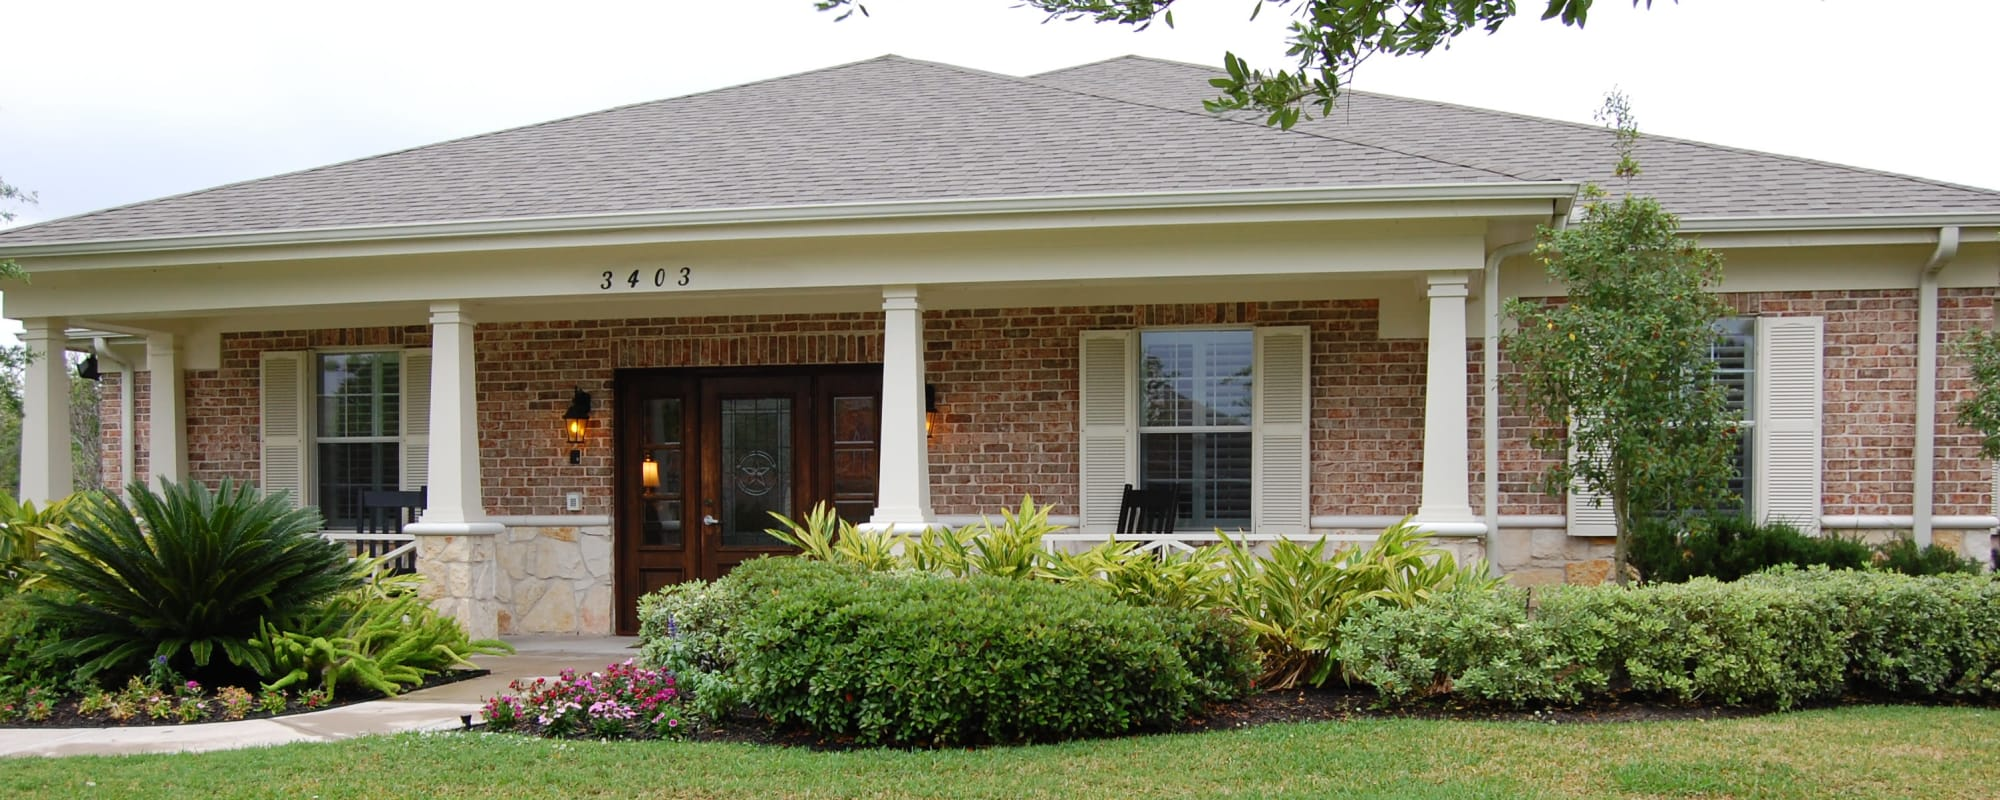 Activities & Events at Autumn Grove Cottage at Pearland in Manvel, Texas